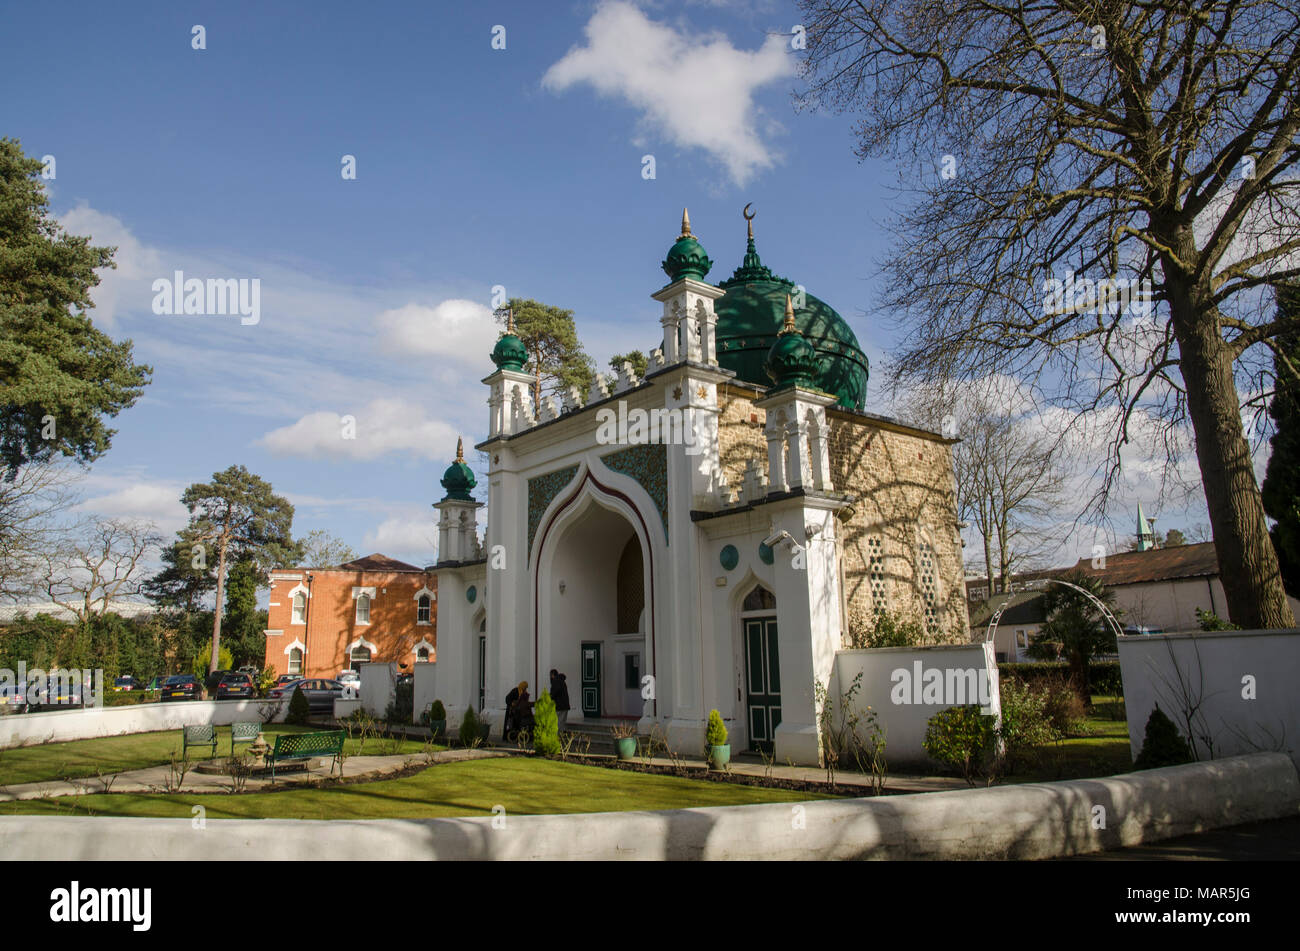 Shah Jahan mosque in Woking. First mosque in the UK - Stock Image